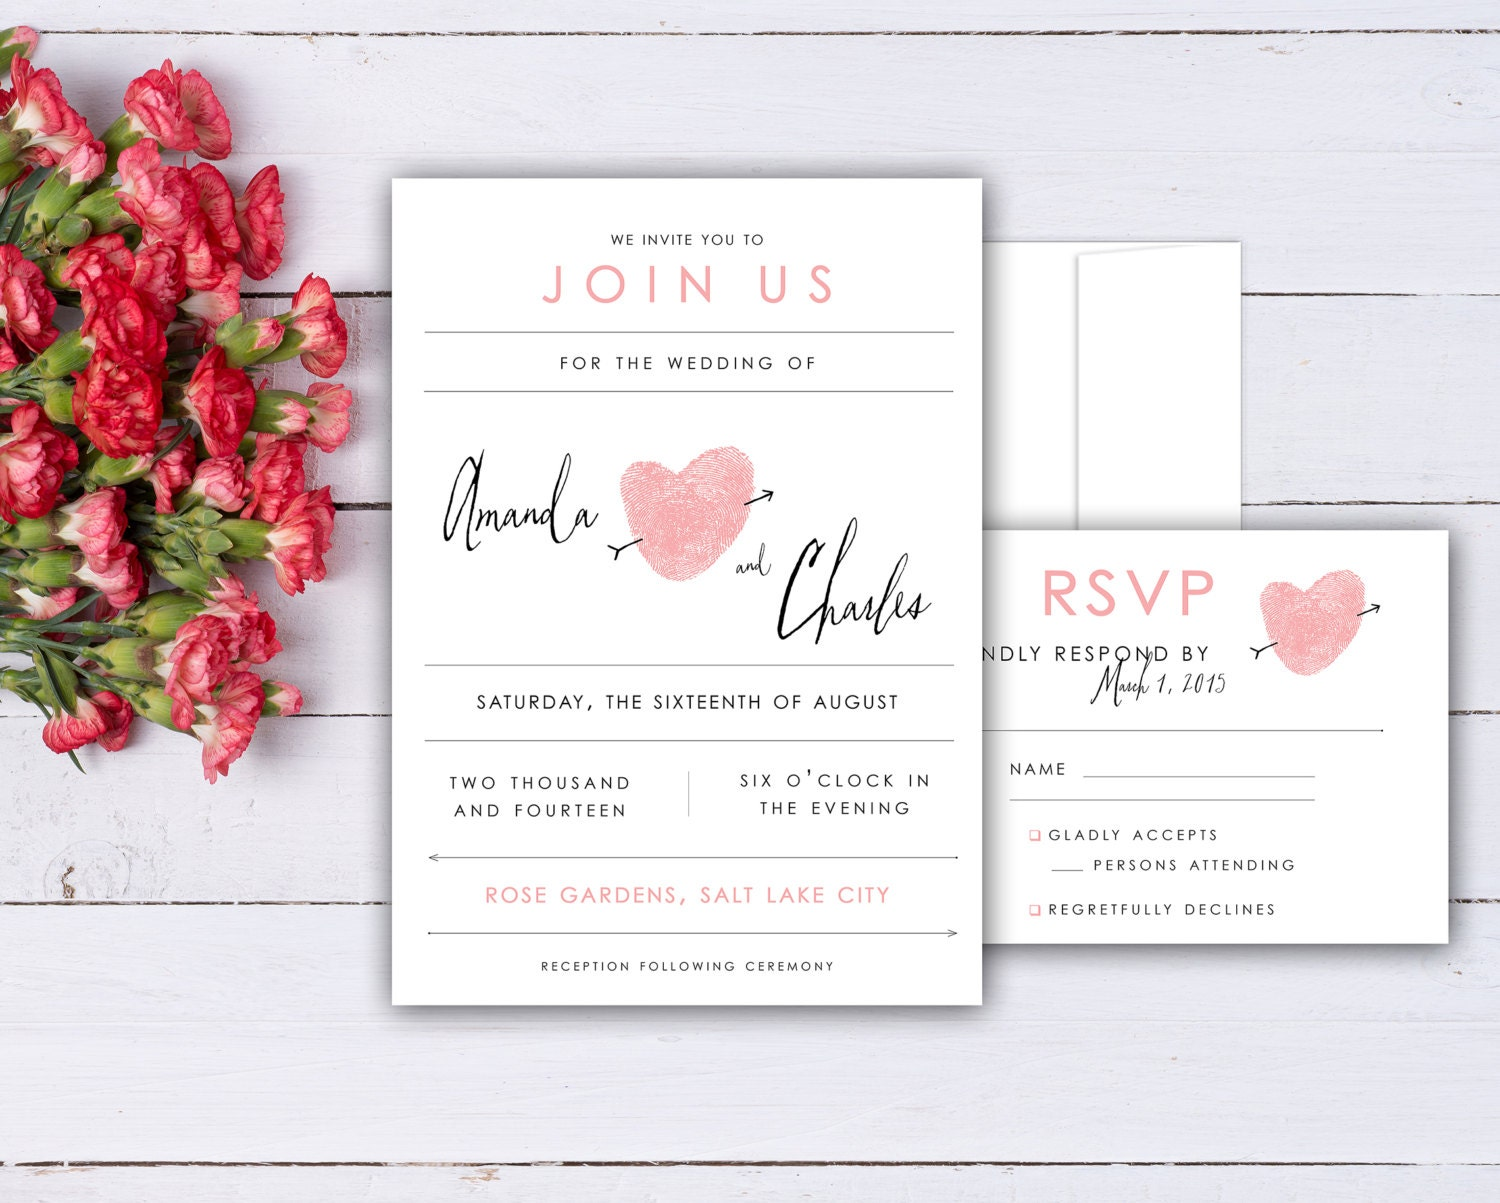 Heart Images For Wedding Invitations: Fingerprint Heart Wedding Invitation And RSVP Card Set Made